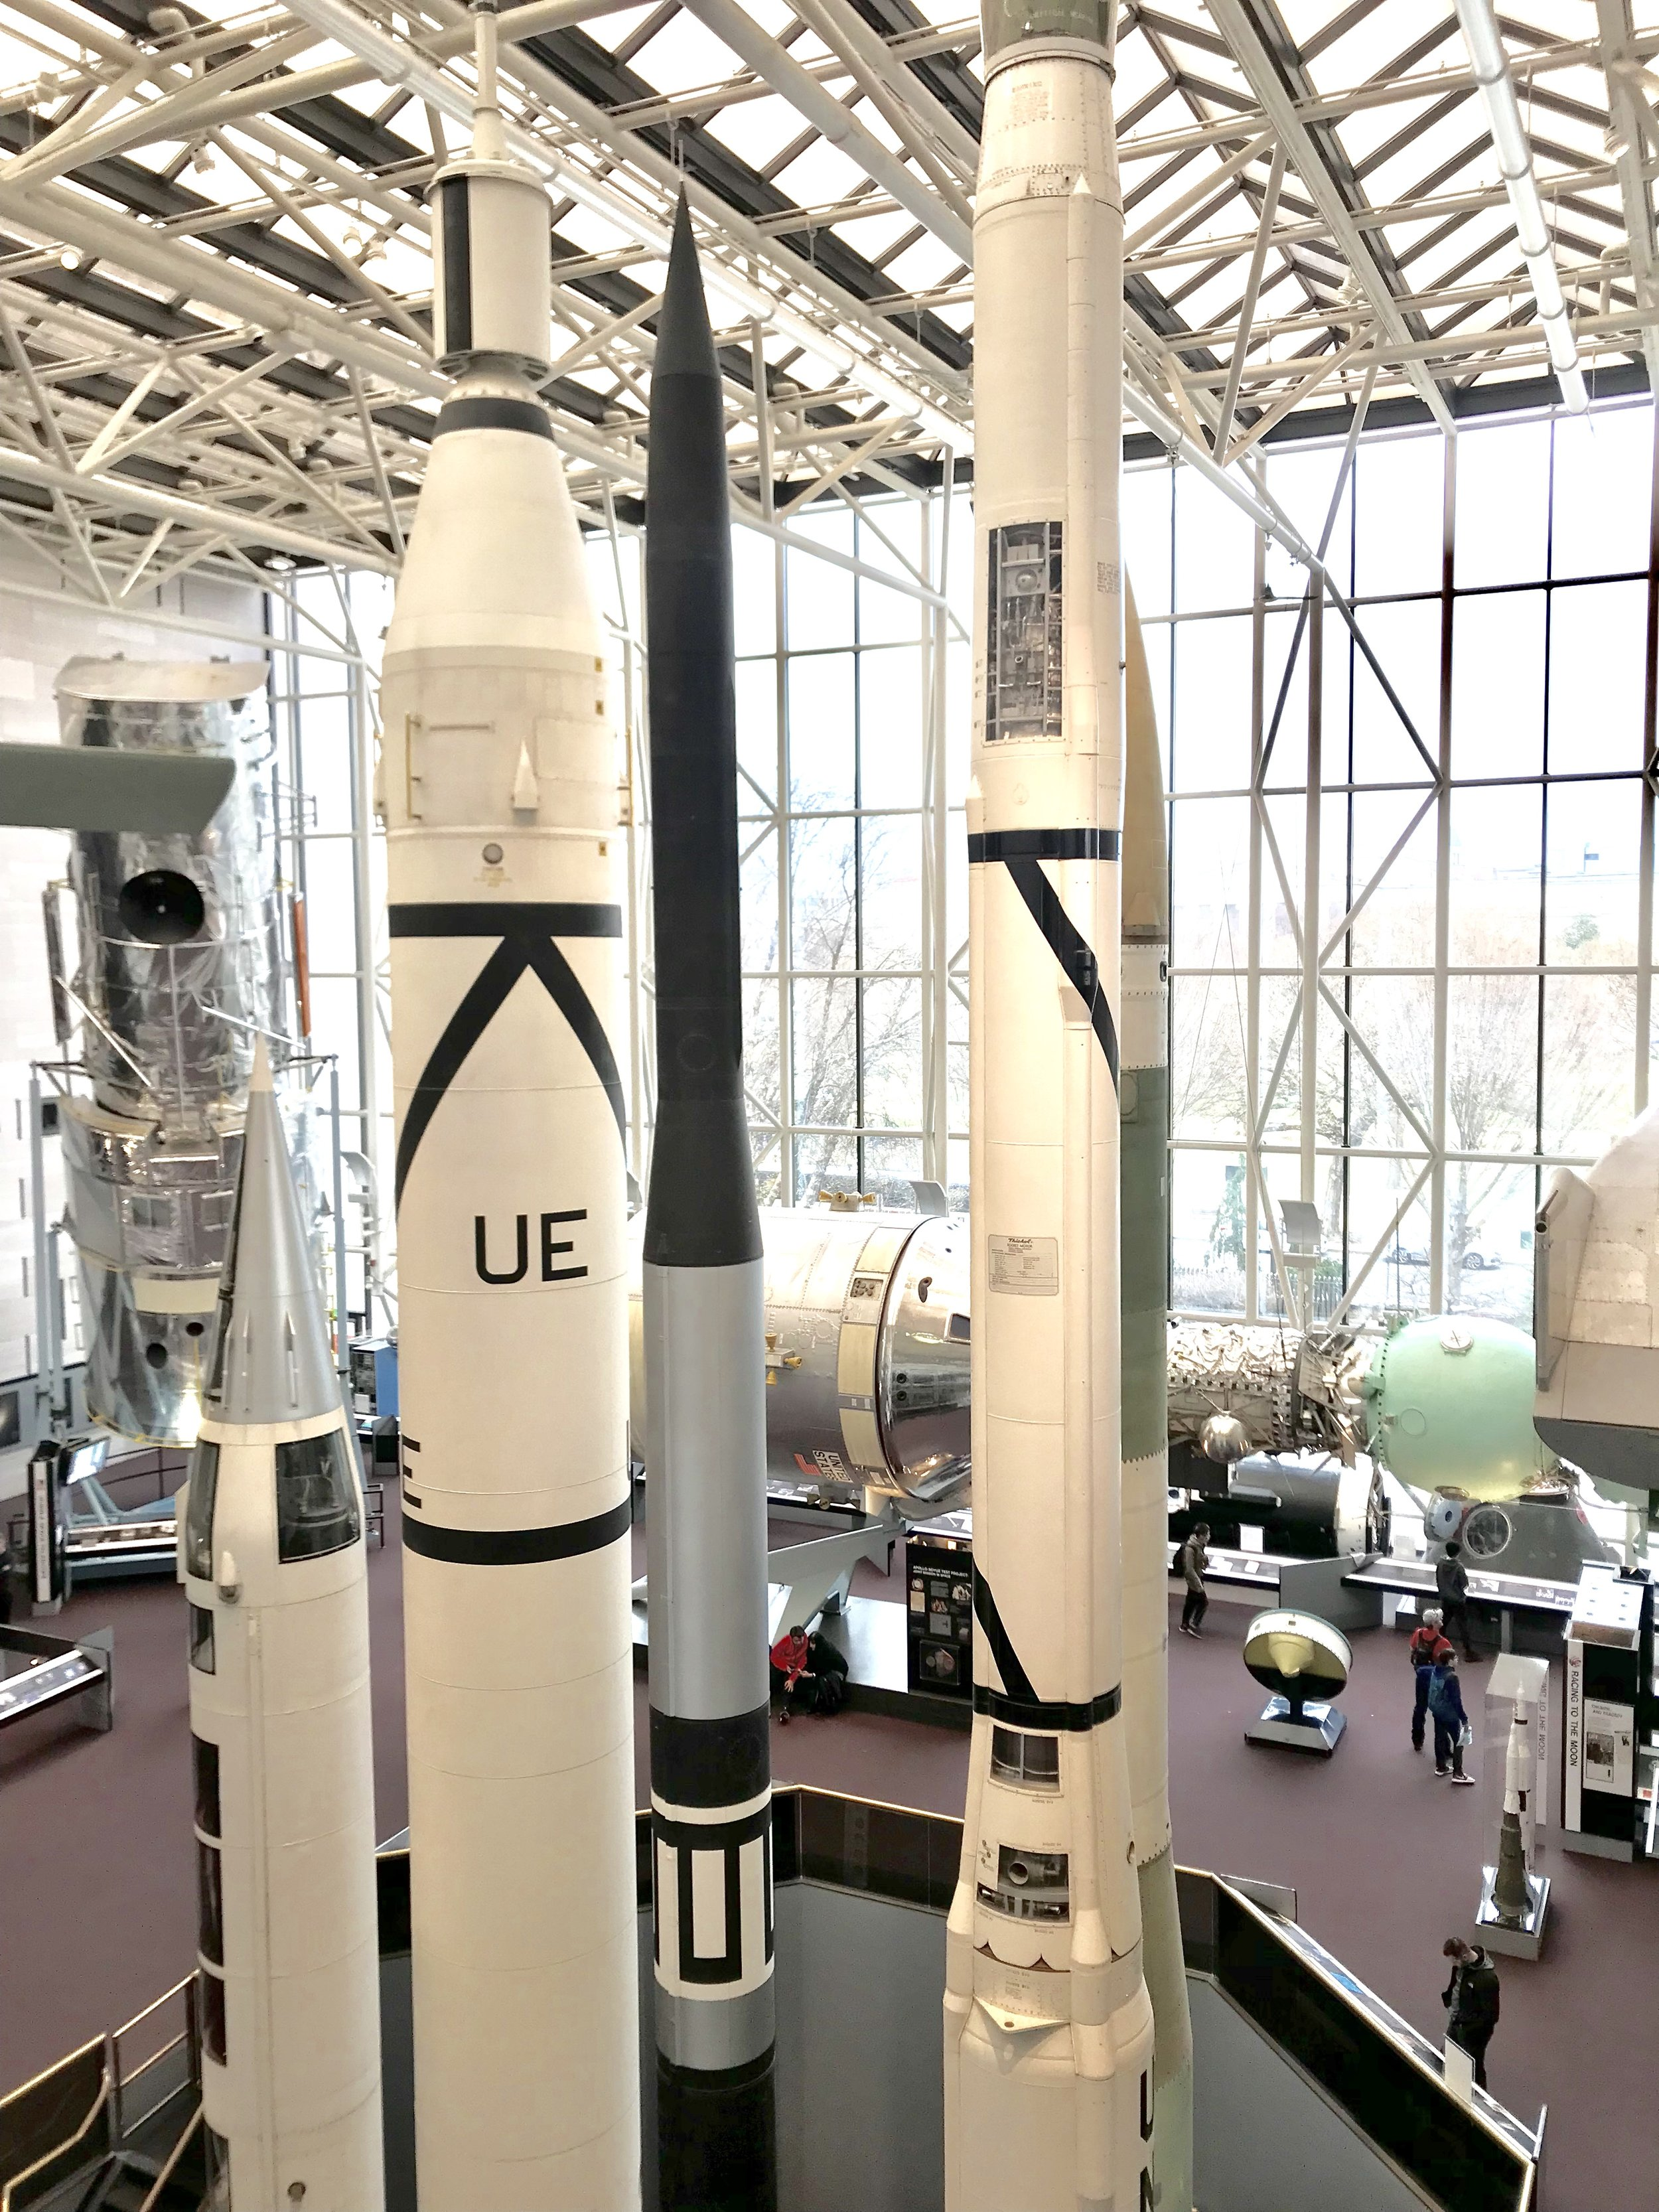 Different rockets on display at the National Air and Space Museum in Washington D.C.